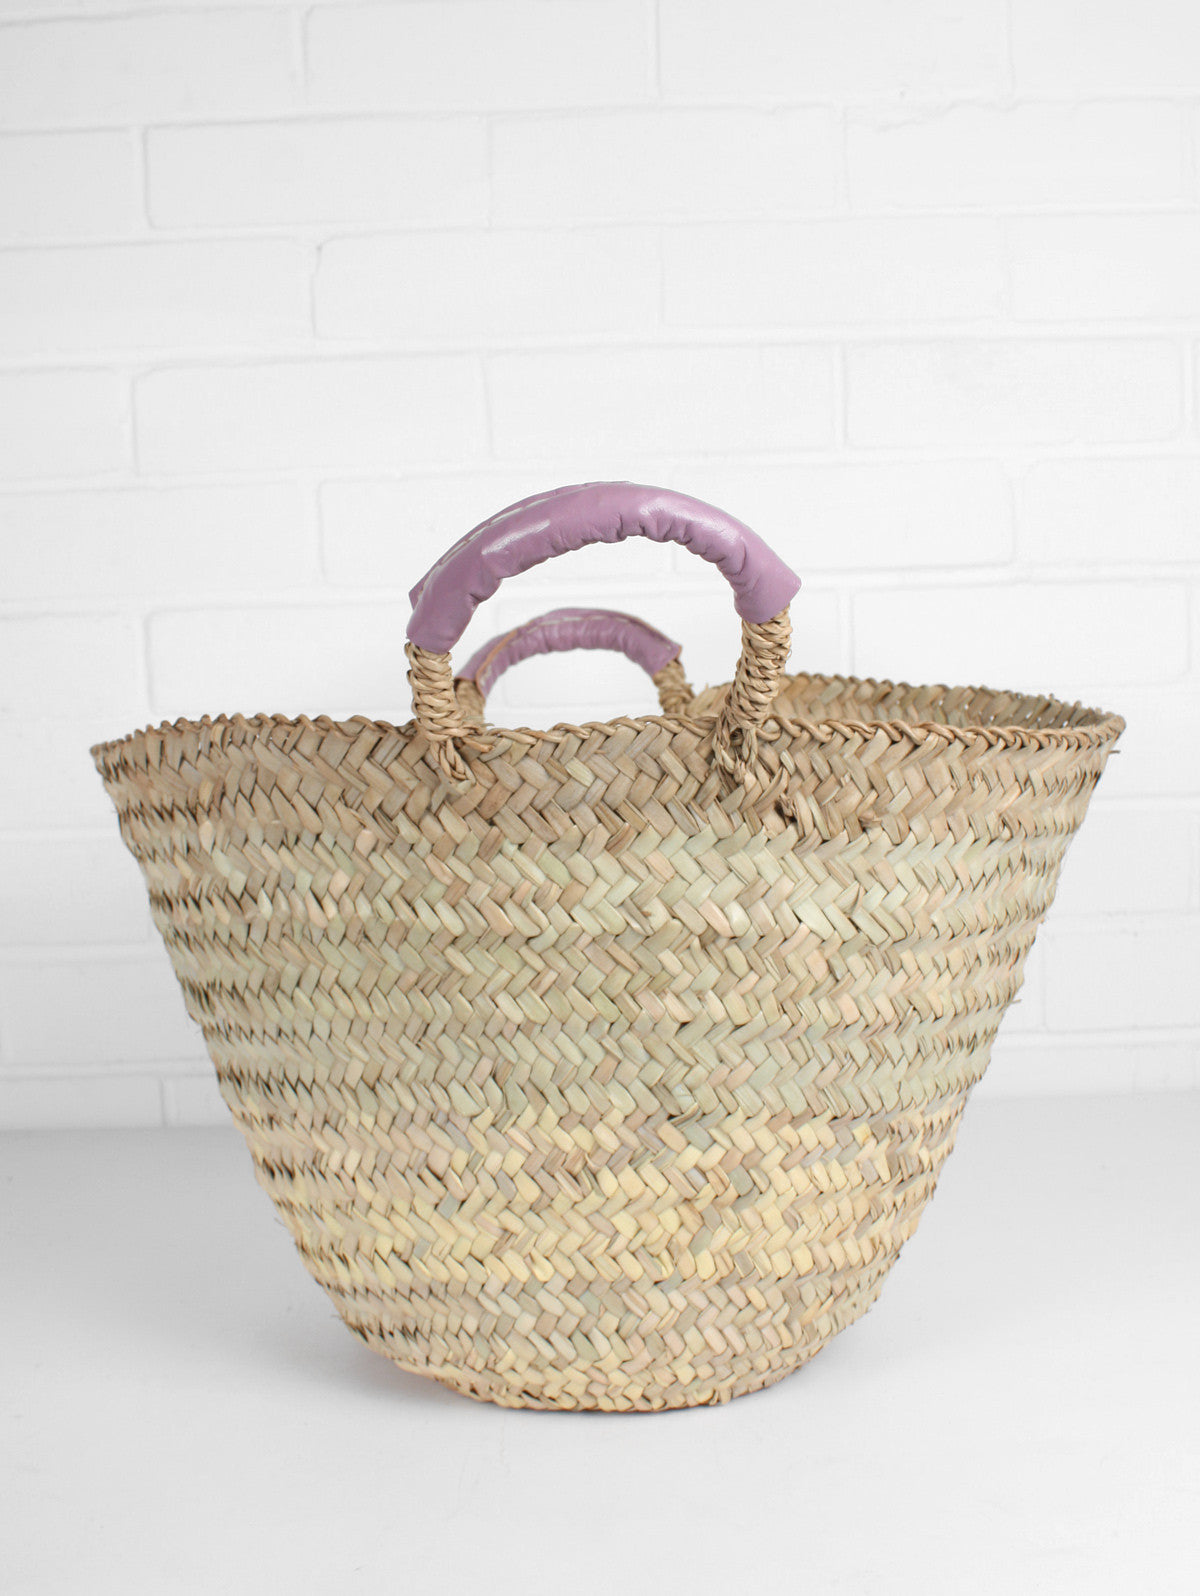 Beldi Leather Baskets, Vintage Pink